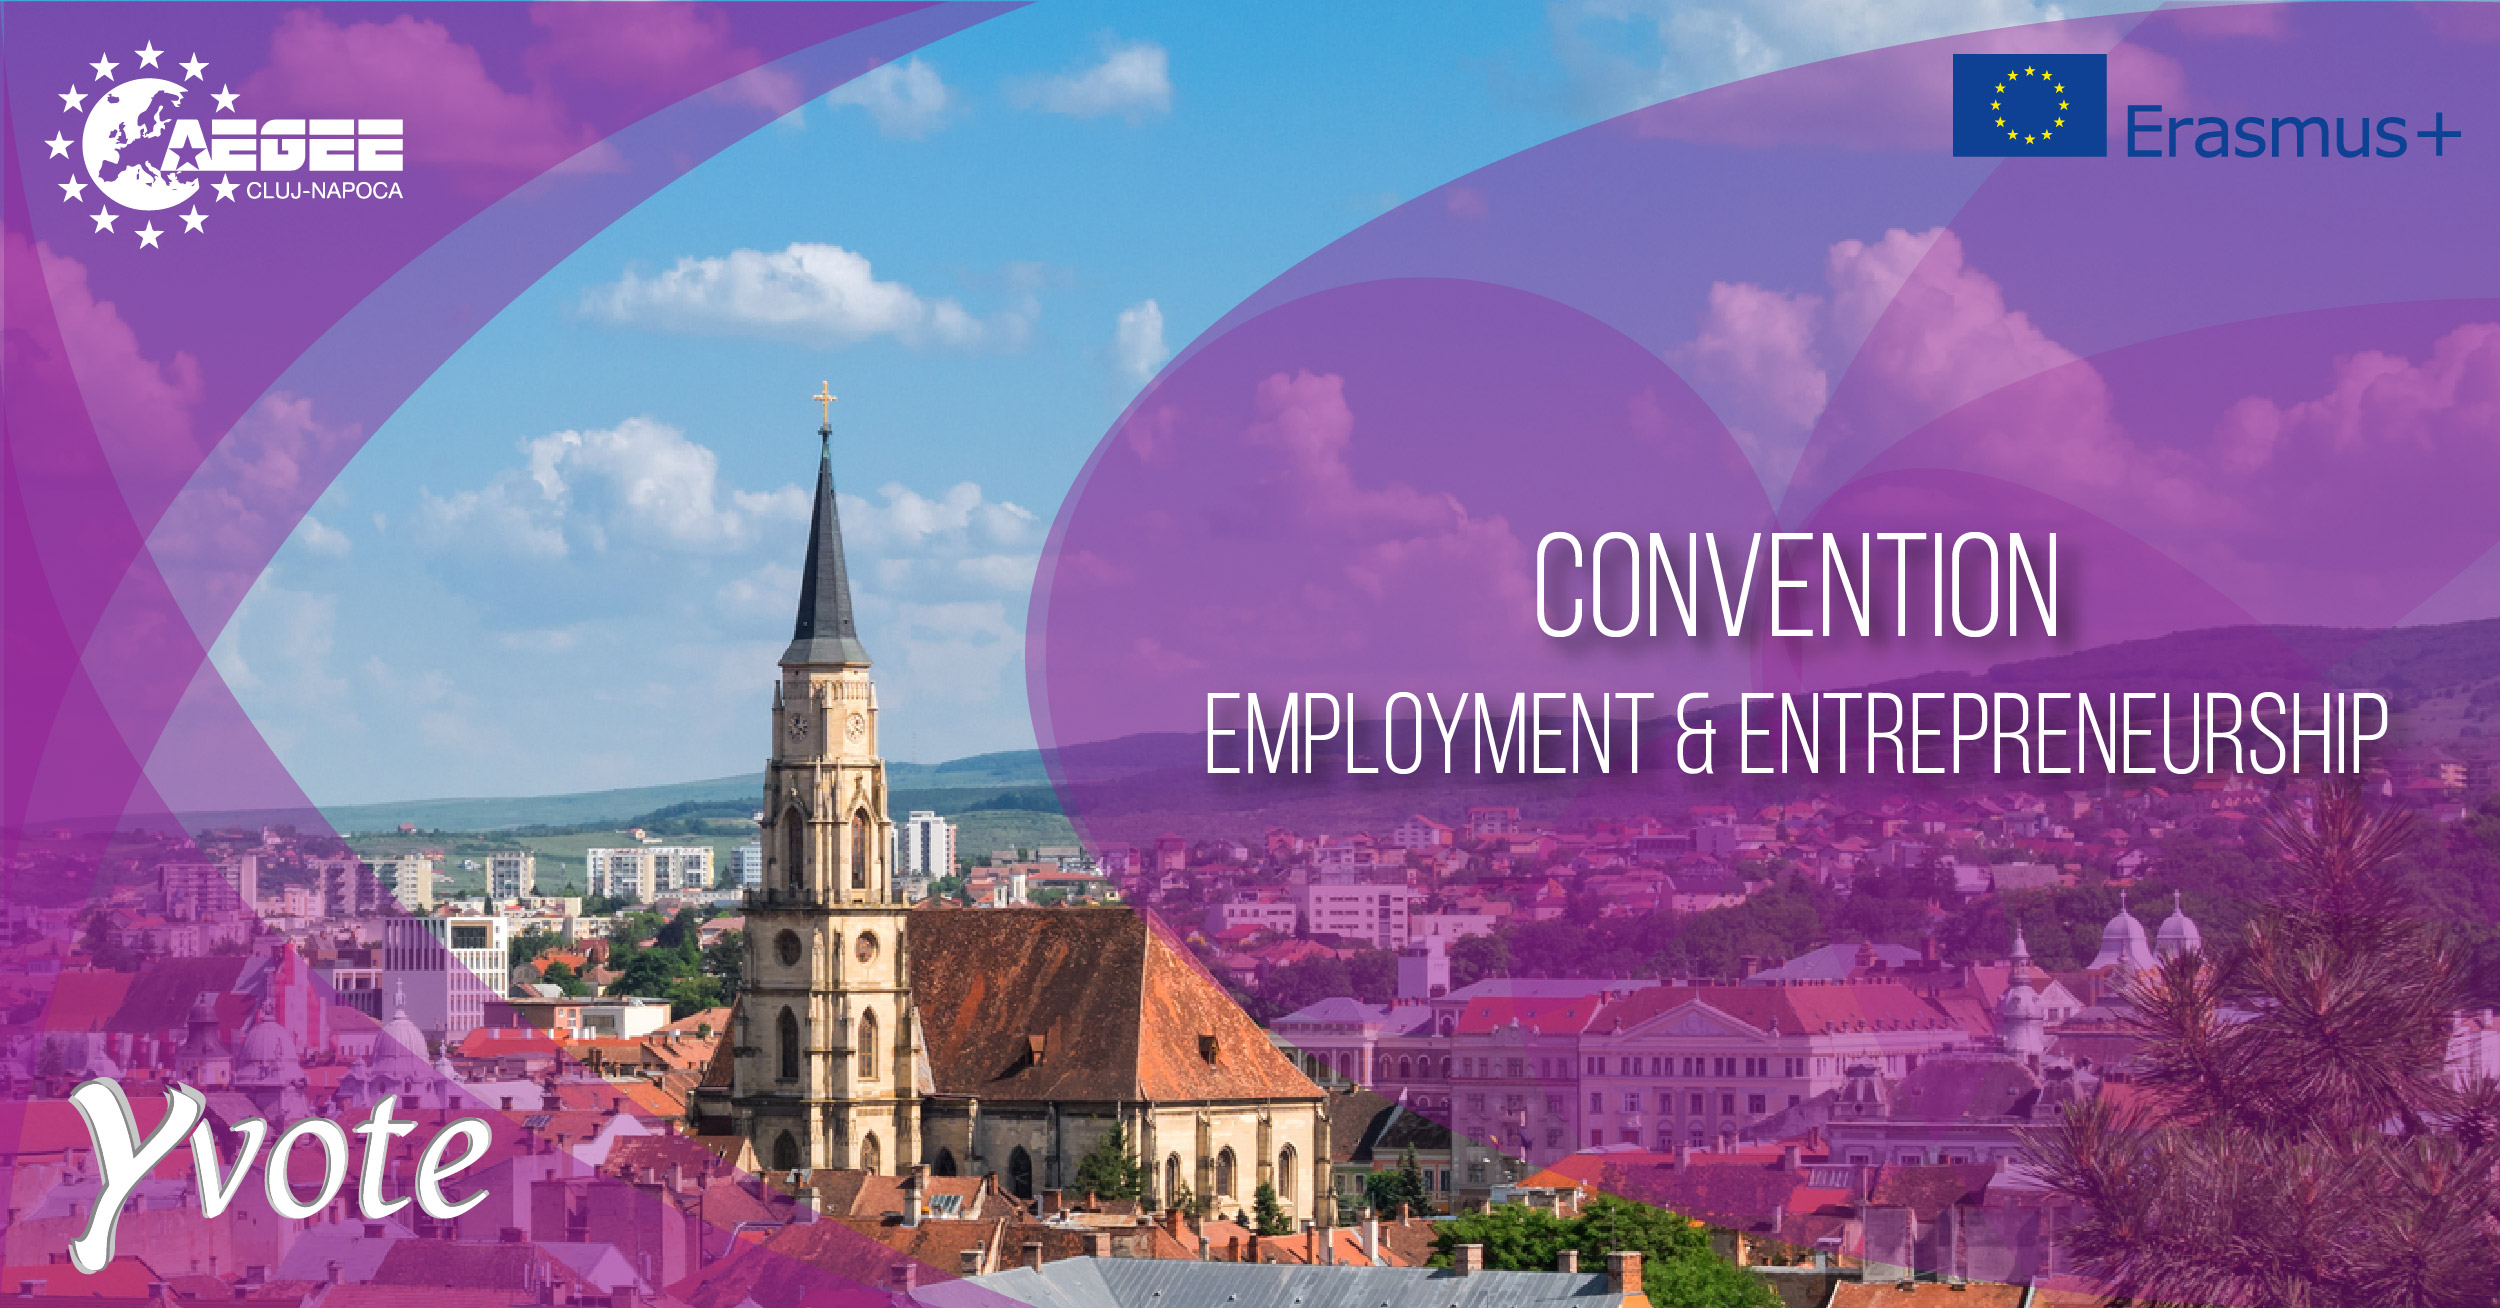 Y Vote Convention on Employment and Entrepreneurship